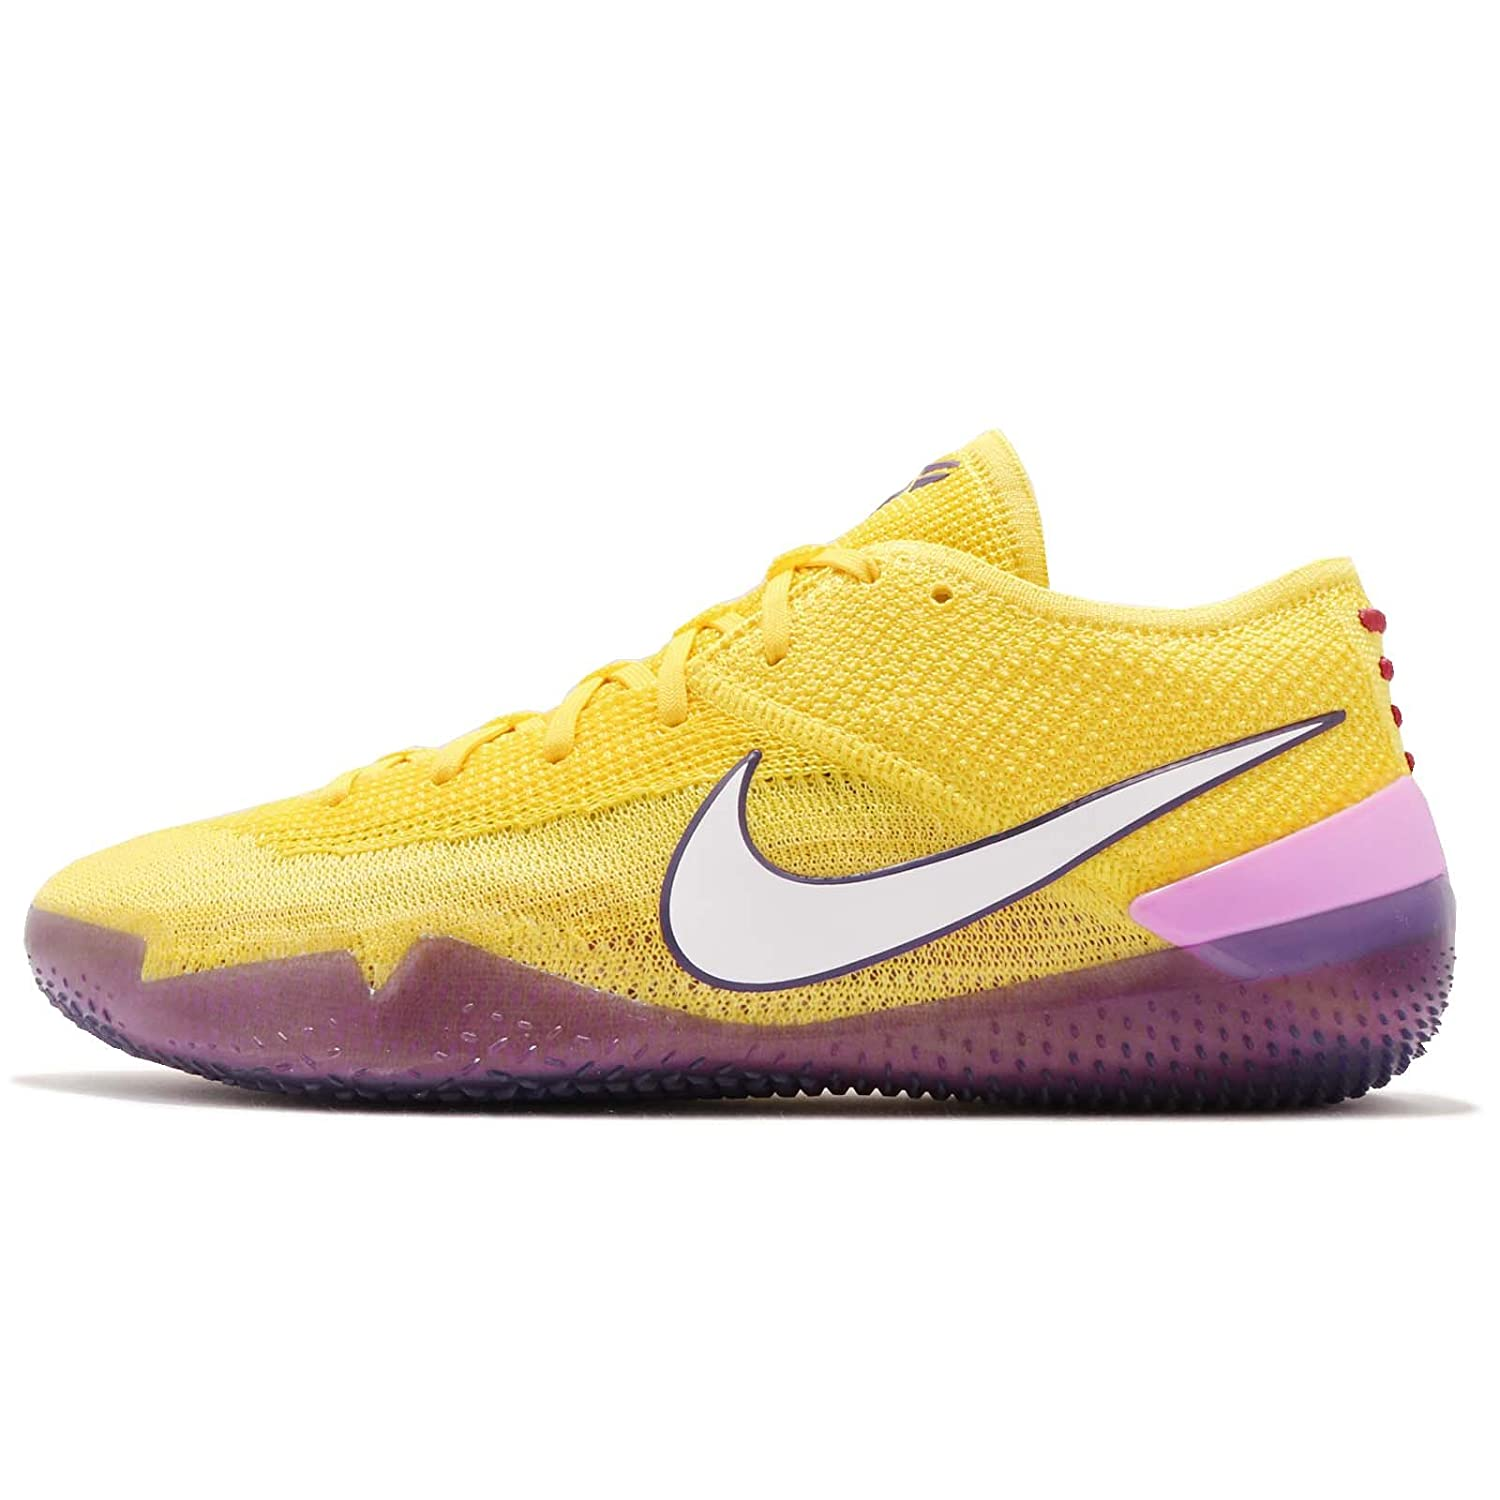 innovative design 916d4 f03ad Nike - Kobe AD Nxt 360: Amazon.ca: Shoes & Handbags